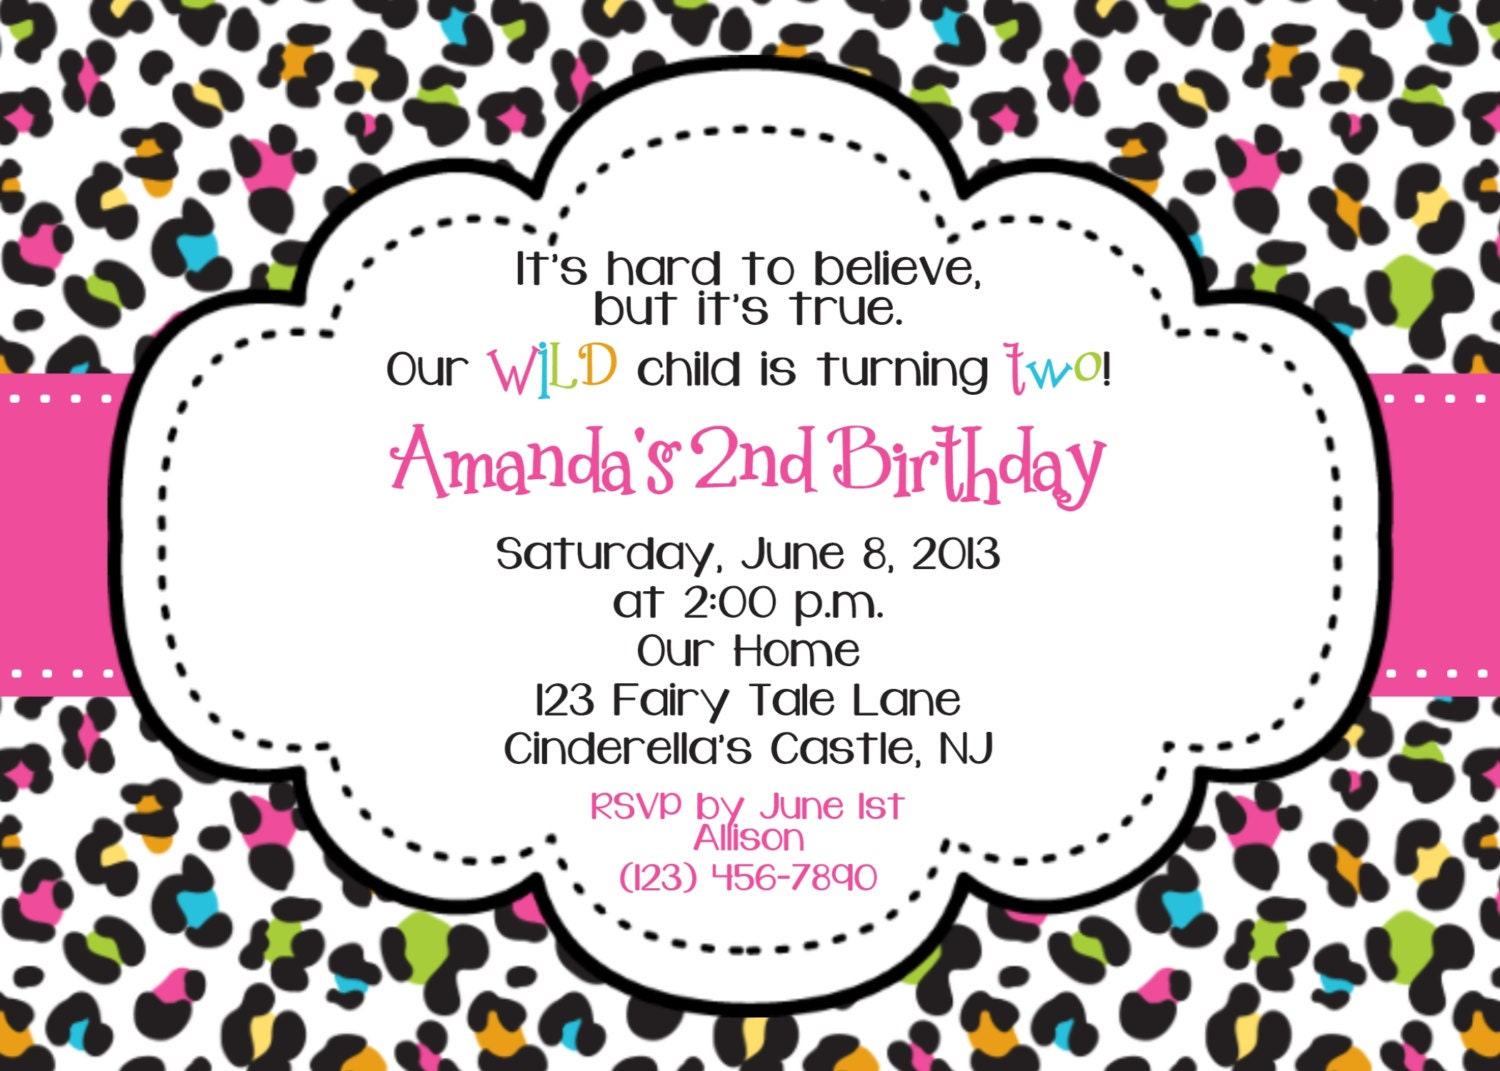 Leopard Print Birthday Party Invitations: Unavailable listing on ...